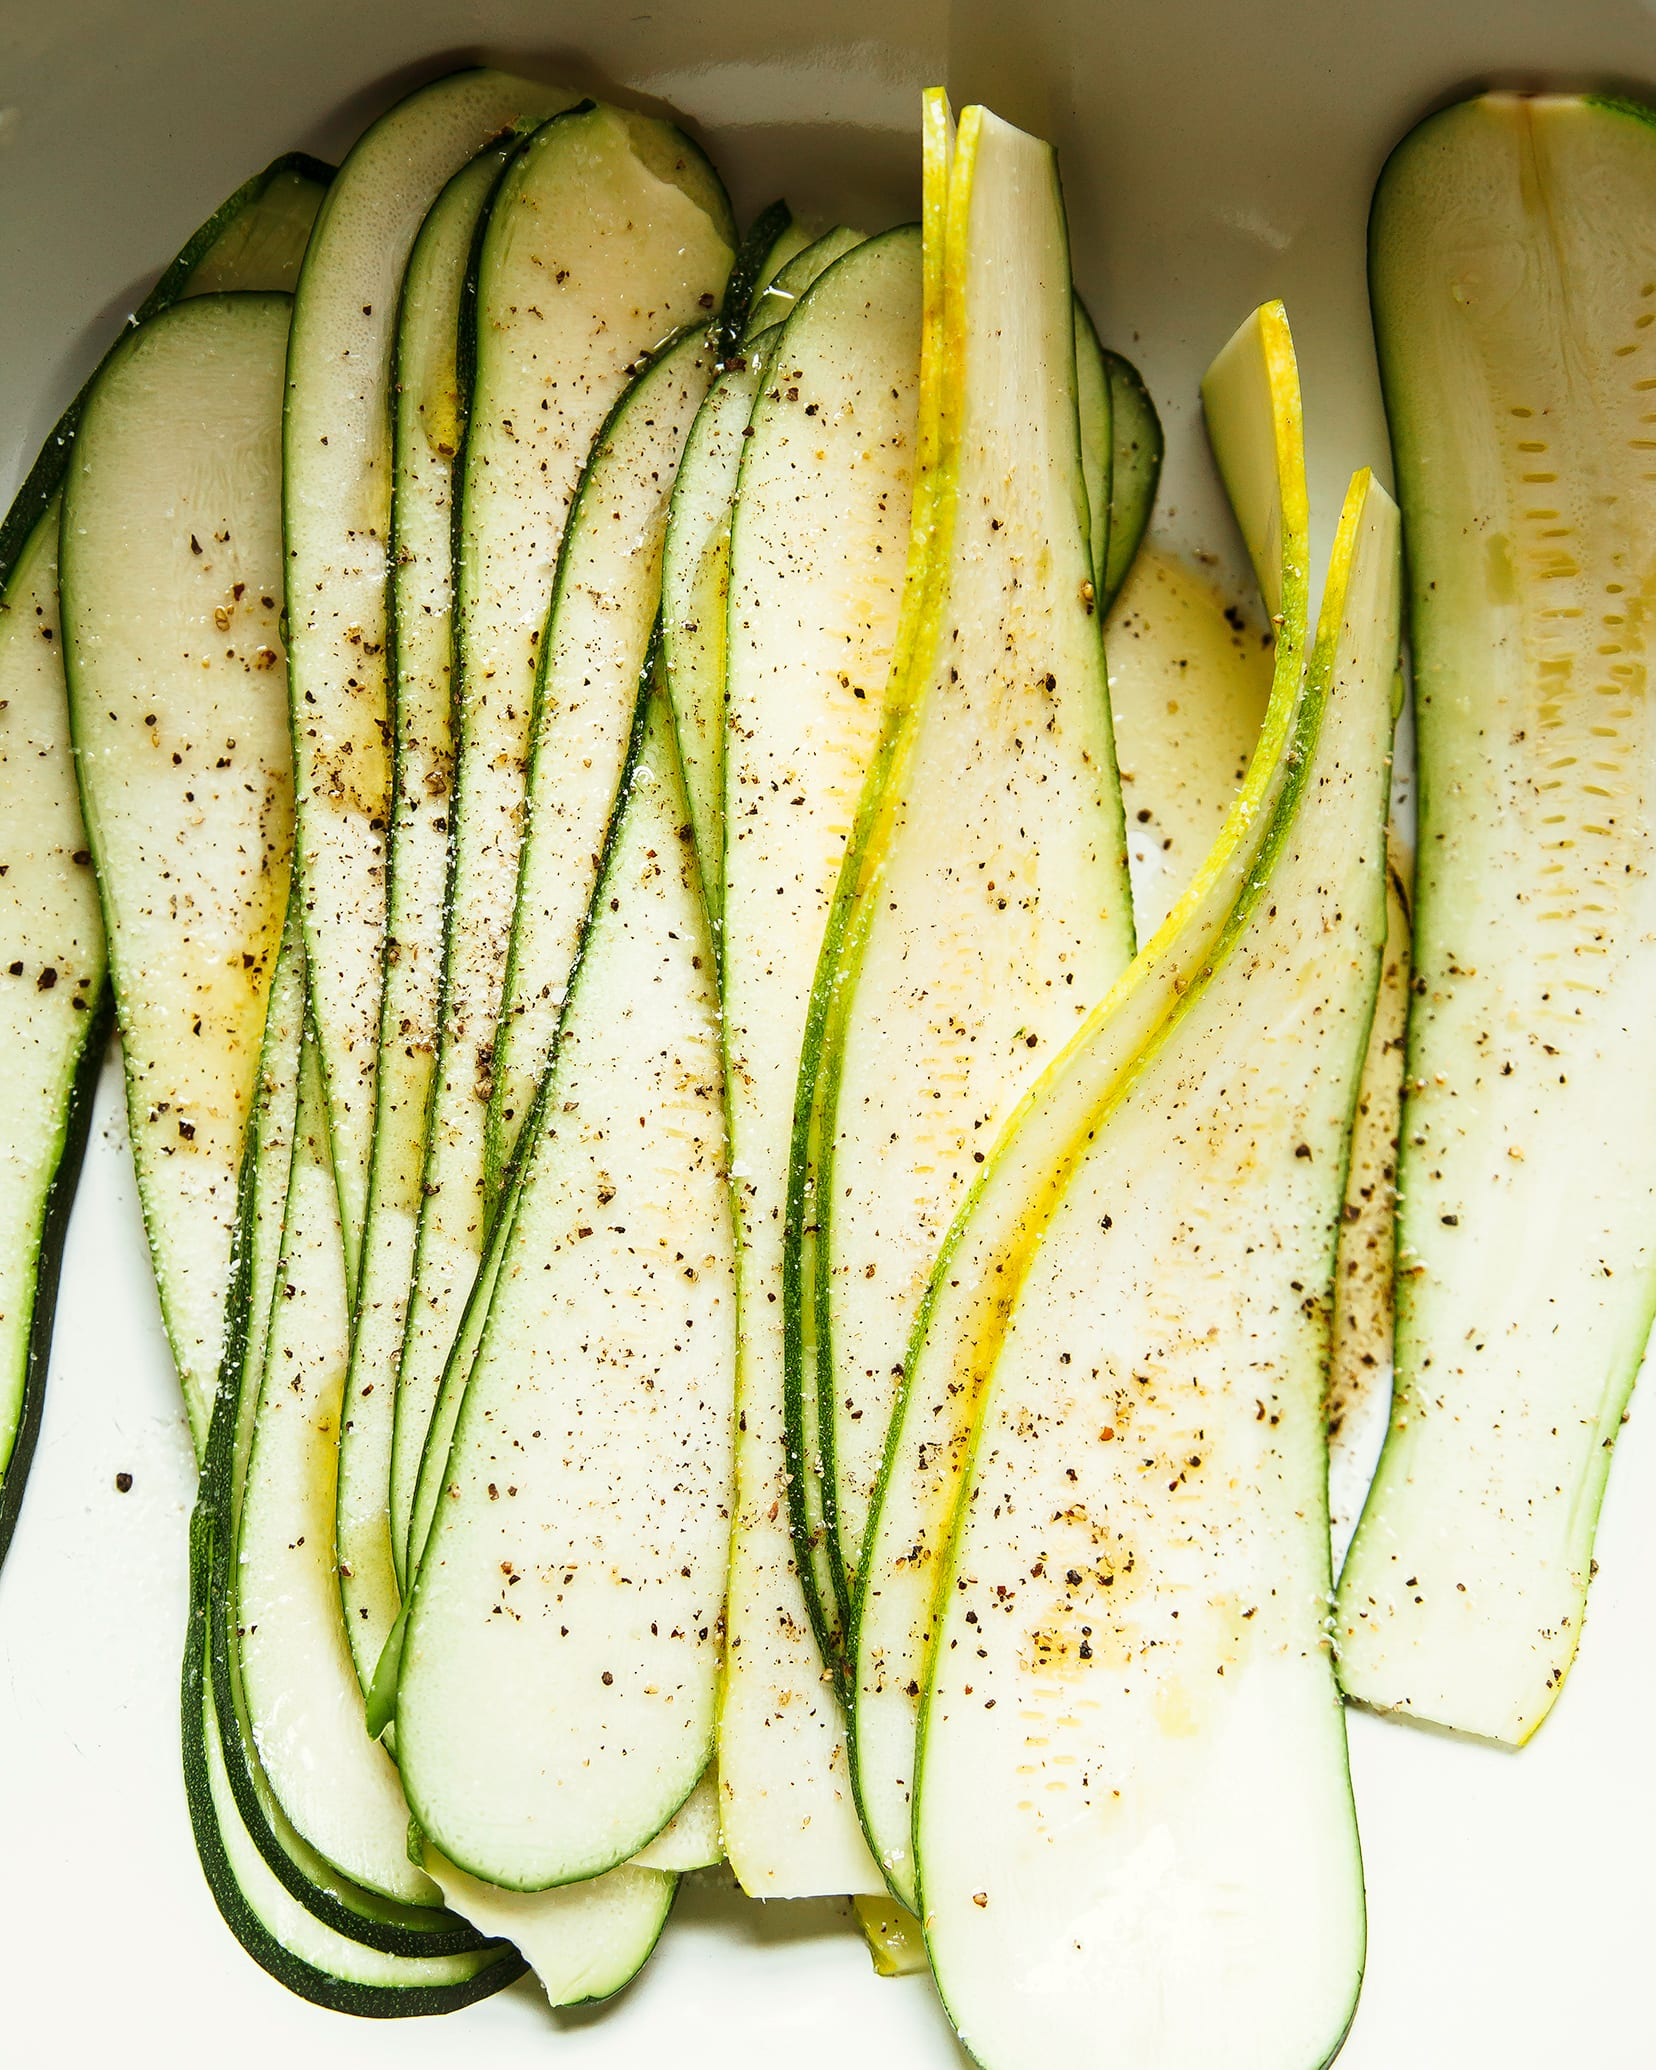 An overhead shot of very thin zucchini slices, seasoned with salt and pepper.